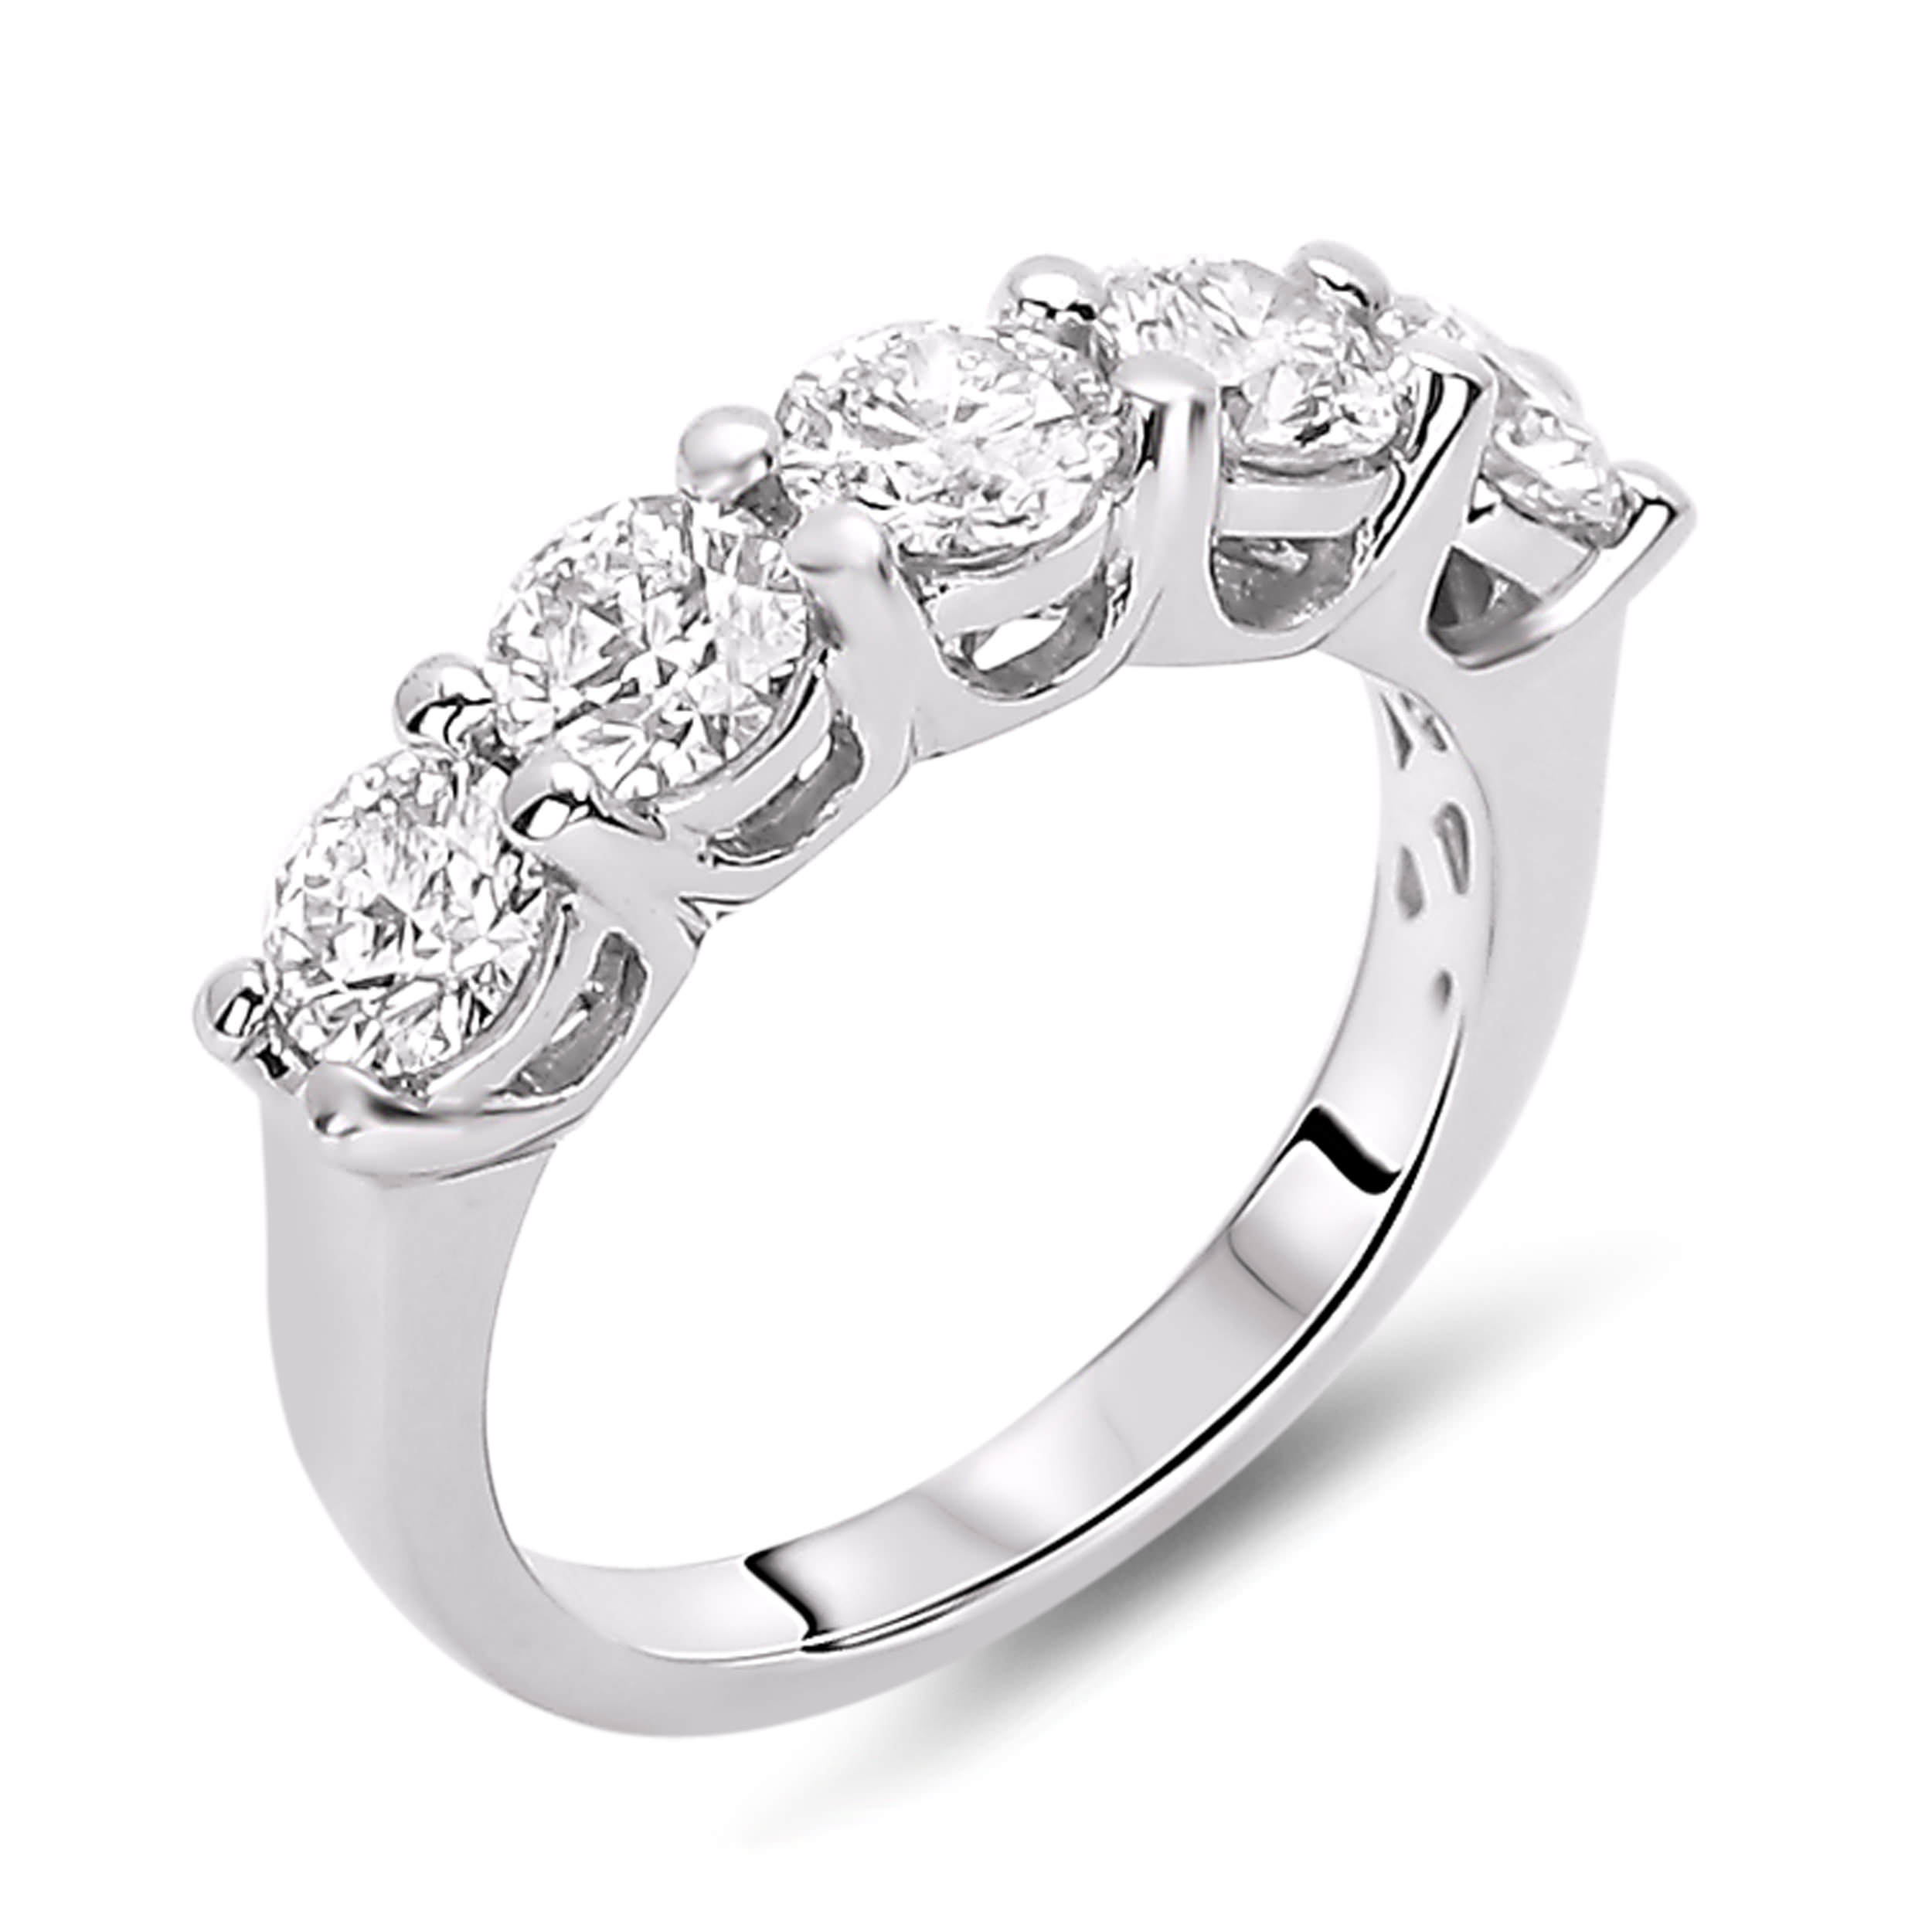 g in gold wedding vs set jewellery h stone anniversary five cut ring bar diamond white rings round